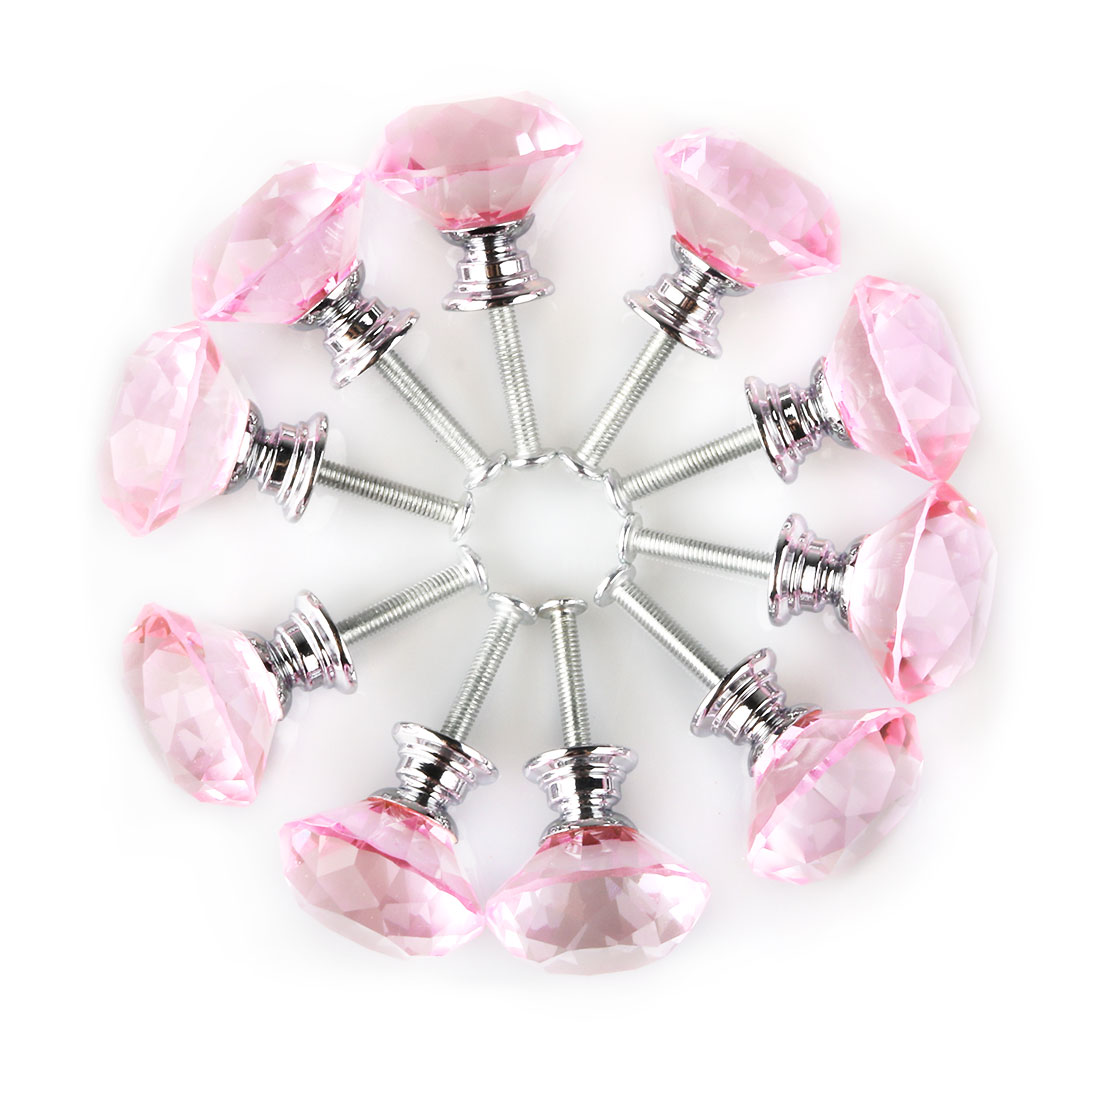 10/20/30/40 pcs 30mm Diamond Crystal Cabinet Drawer Door Knobs Cupboard Pull Handle Knob Accessories